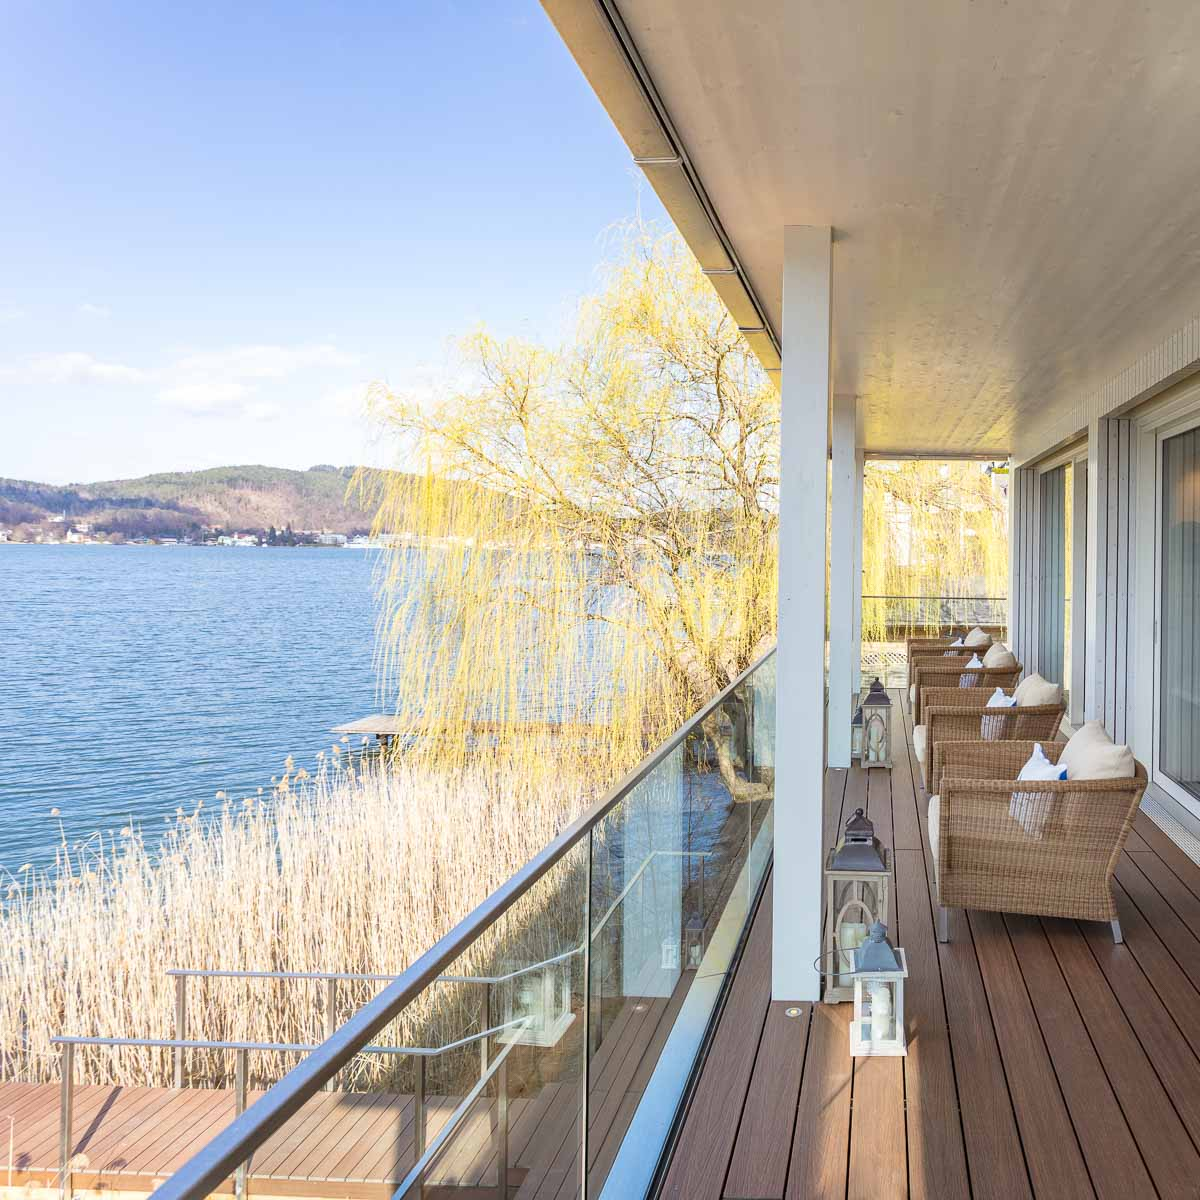 The Original FX Mayr Health Center am Wörthersee Strand